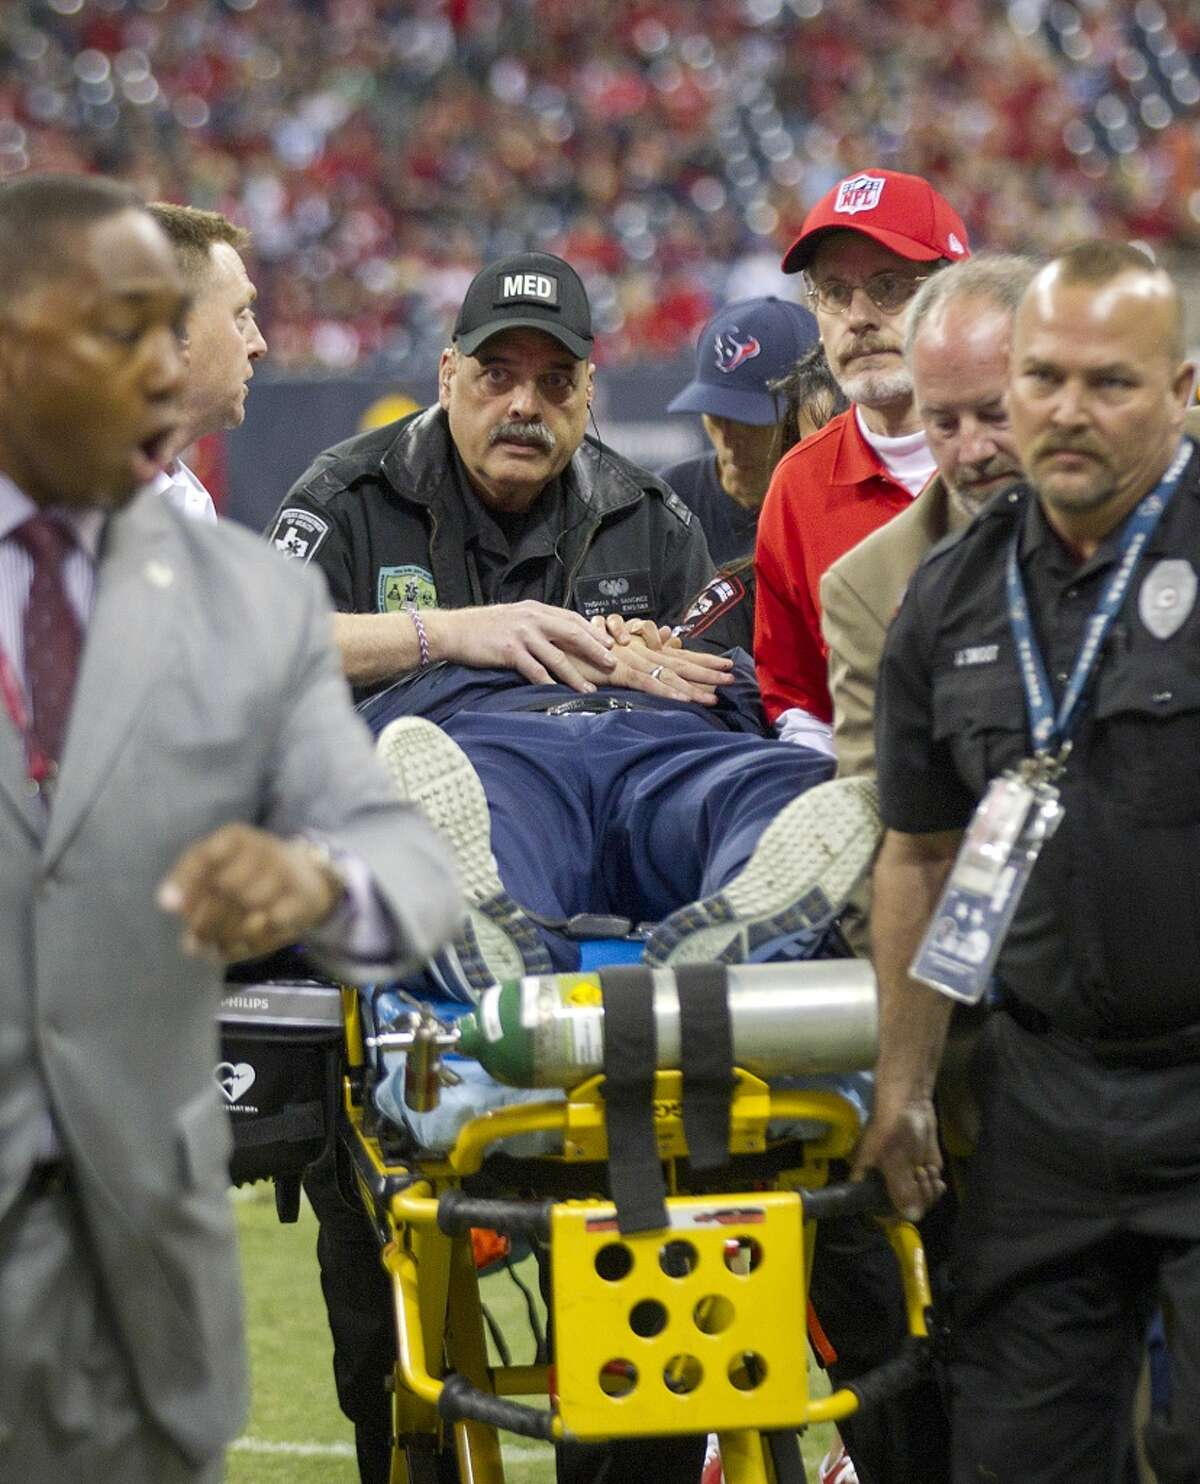 Texans head coach Gary Kubiak leaves the field on a stretcher after he collapsed on the field at the end of the first half.